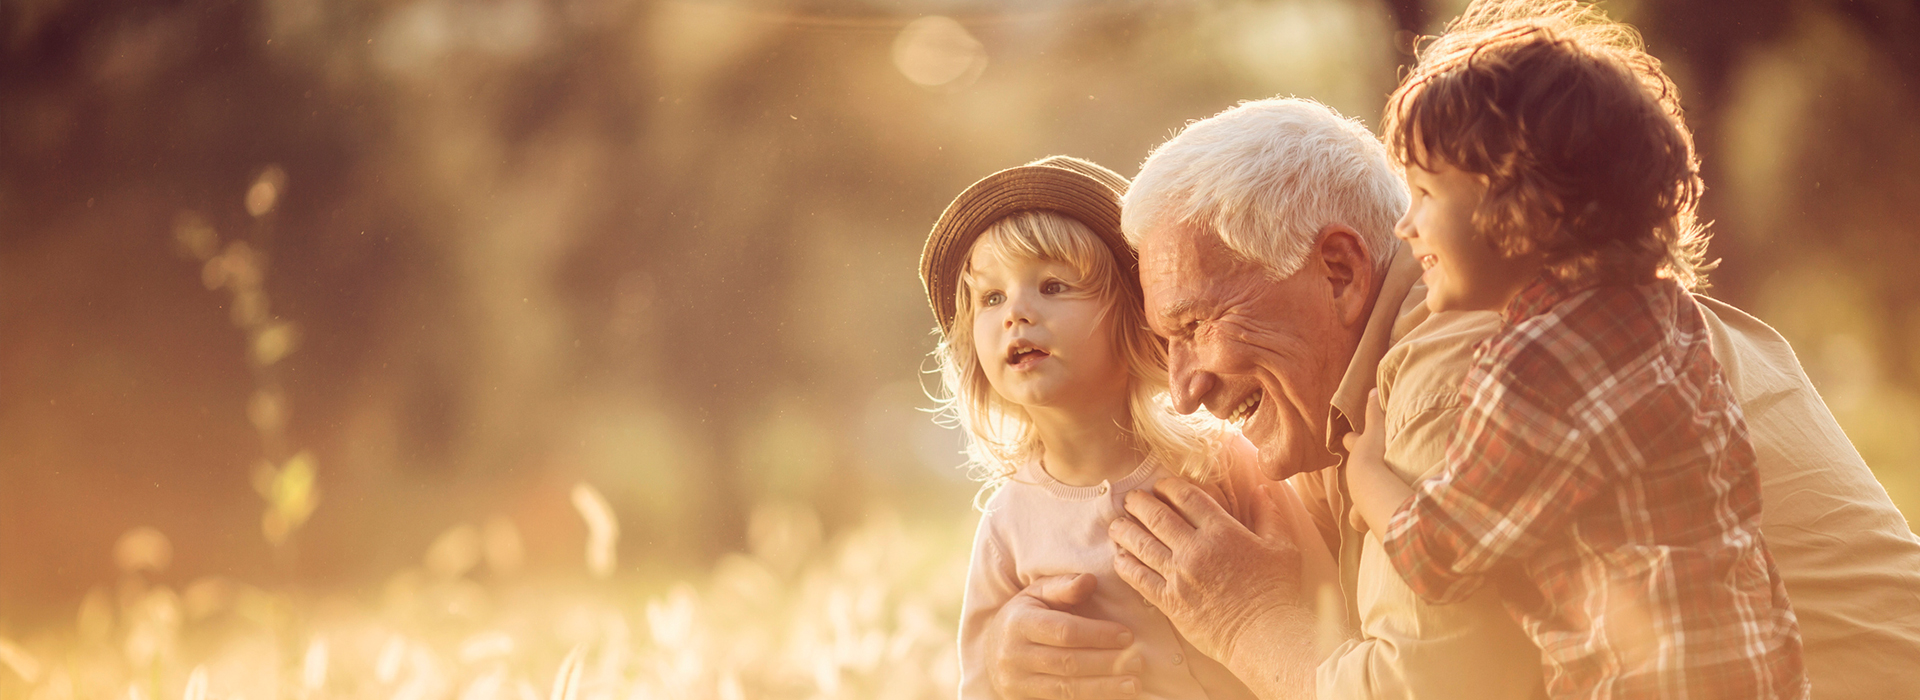 image of a happy male senior having fun with his two grandchildren in an outdoor setting